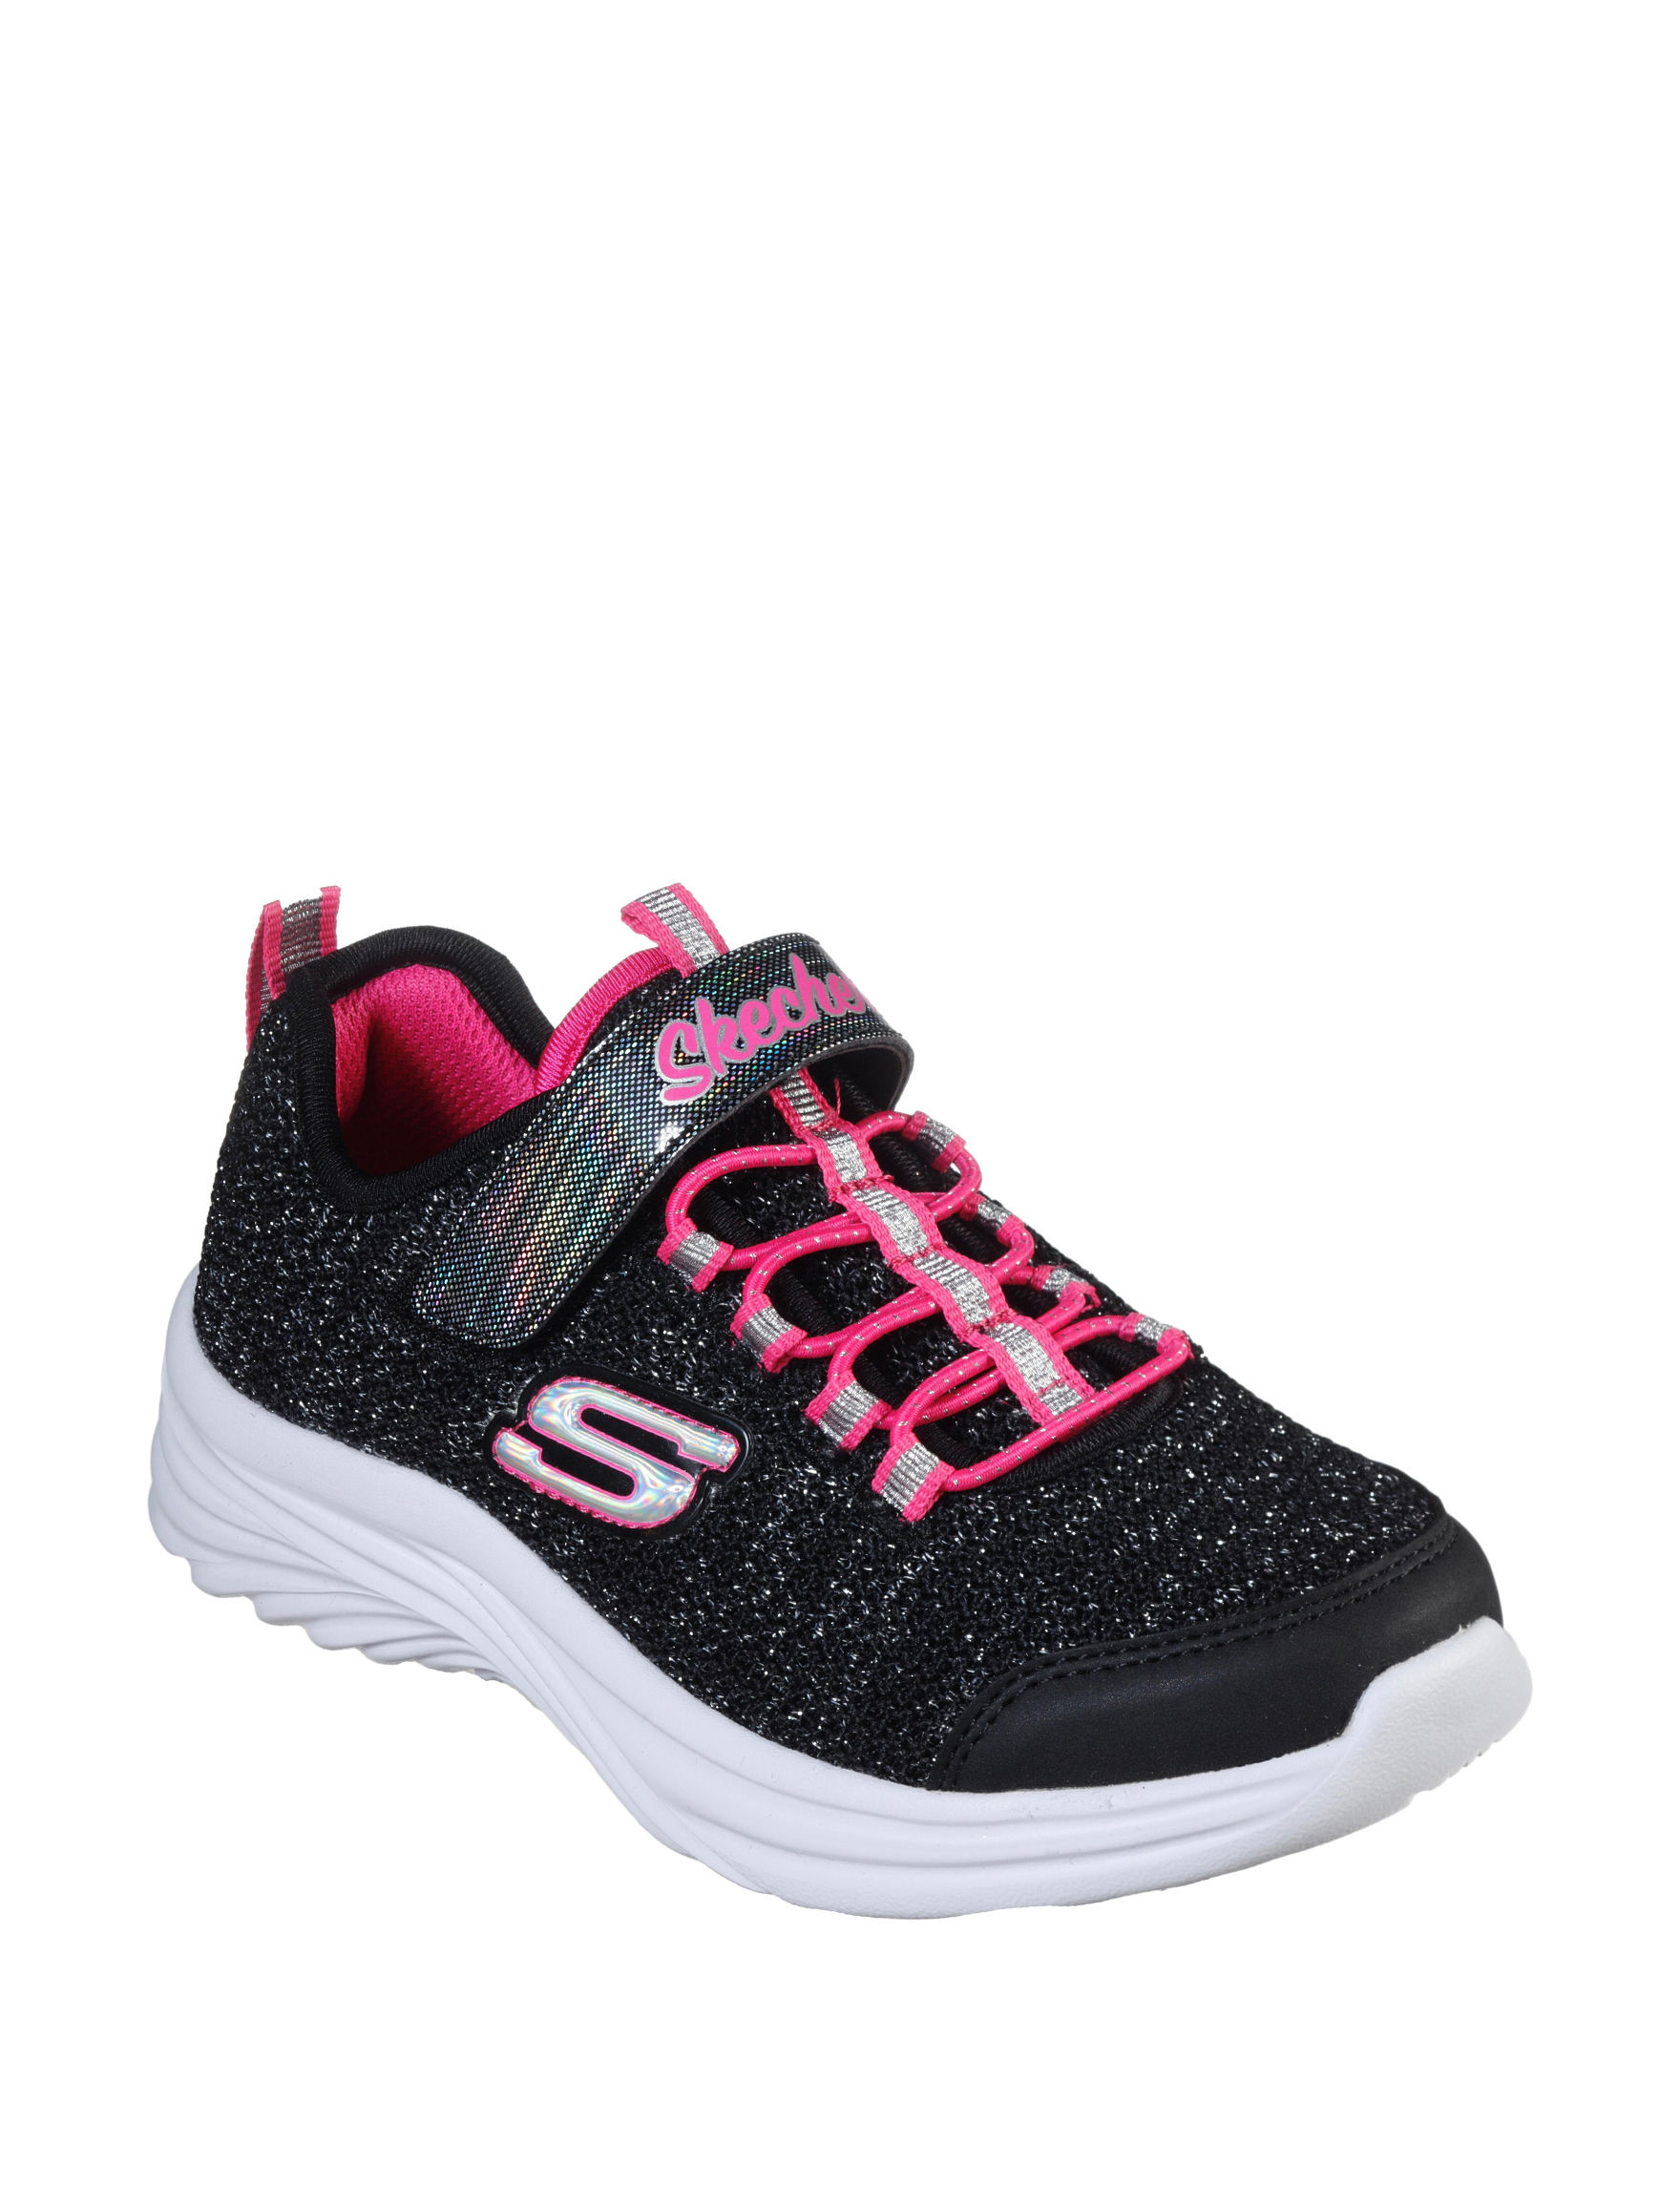 Skechers Black / Pink